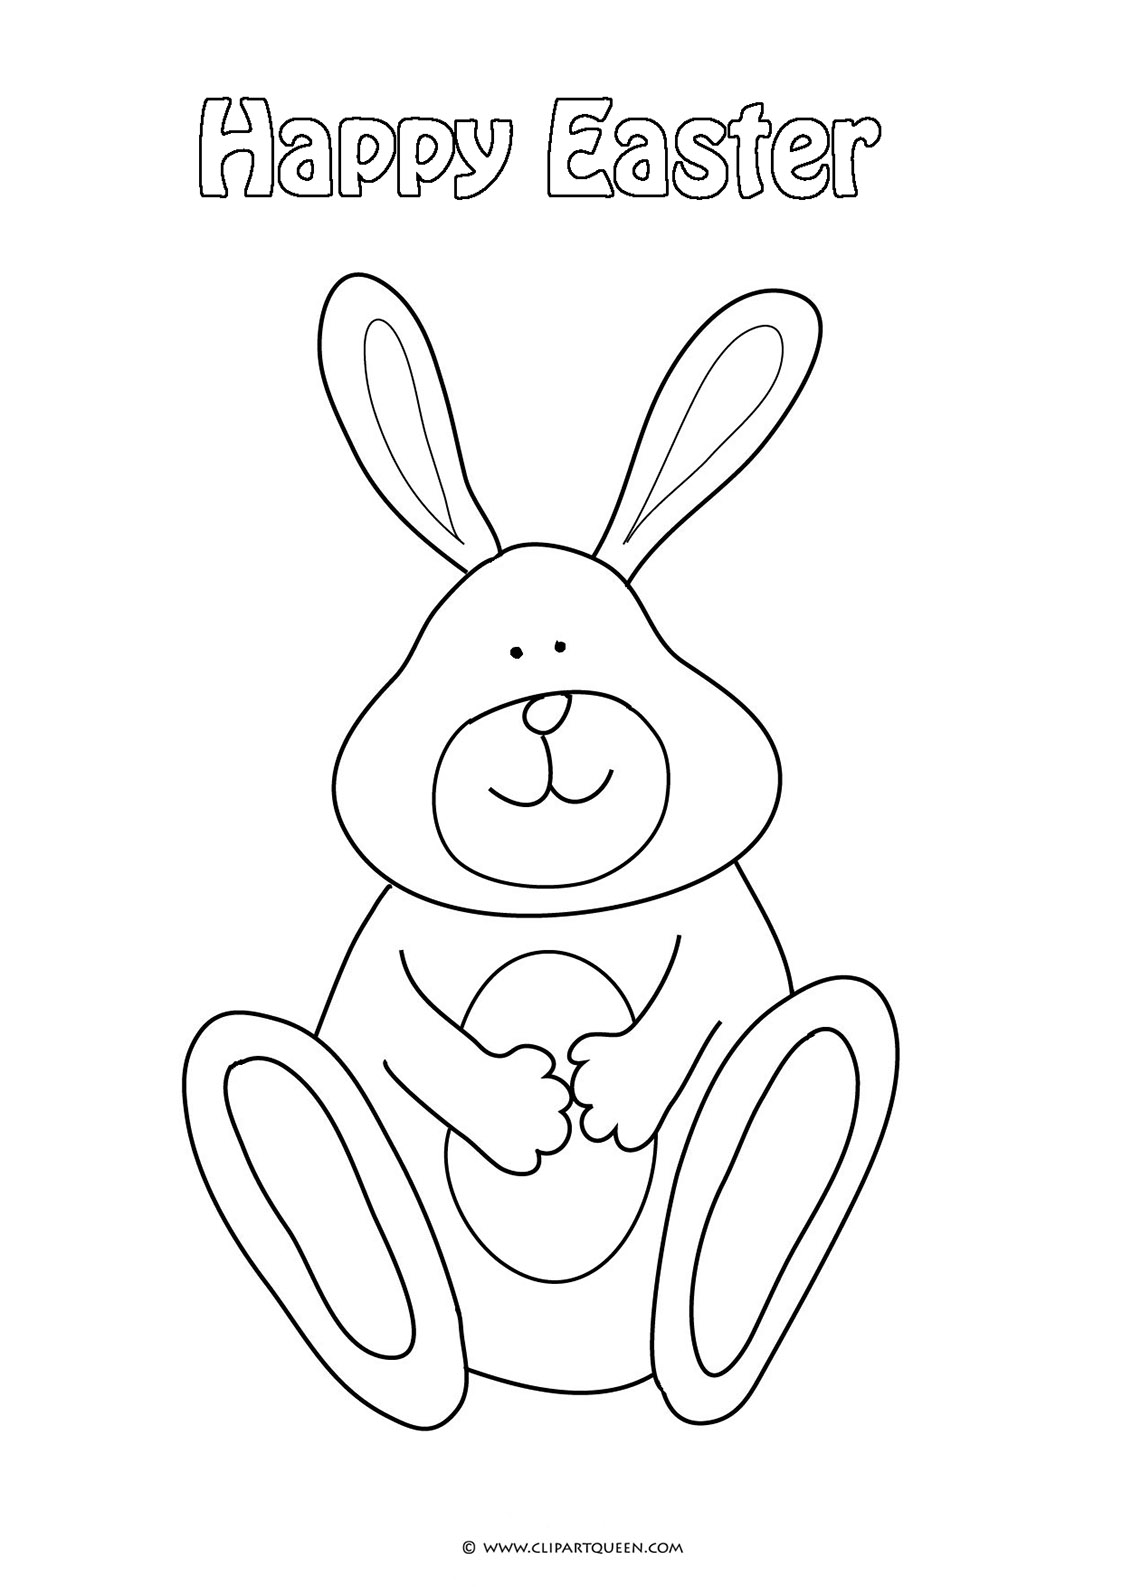 Cute bunny for coloring